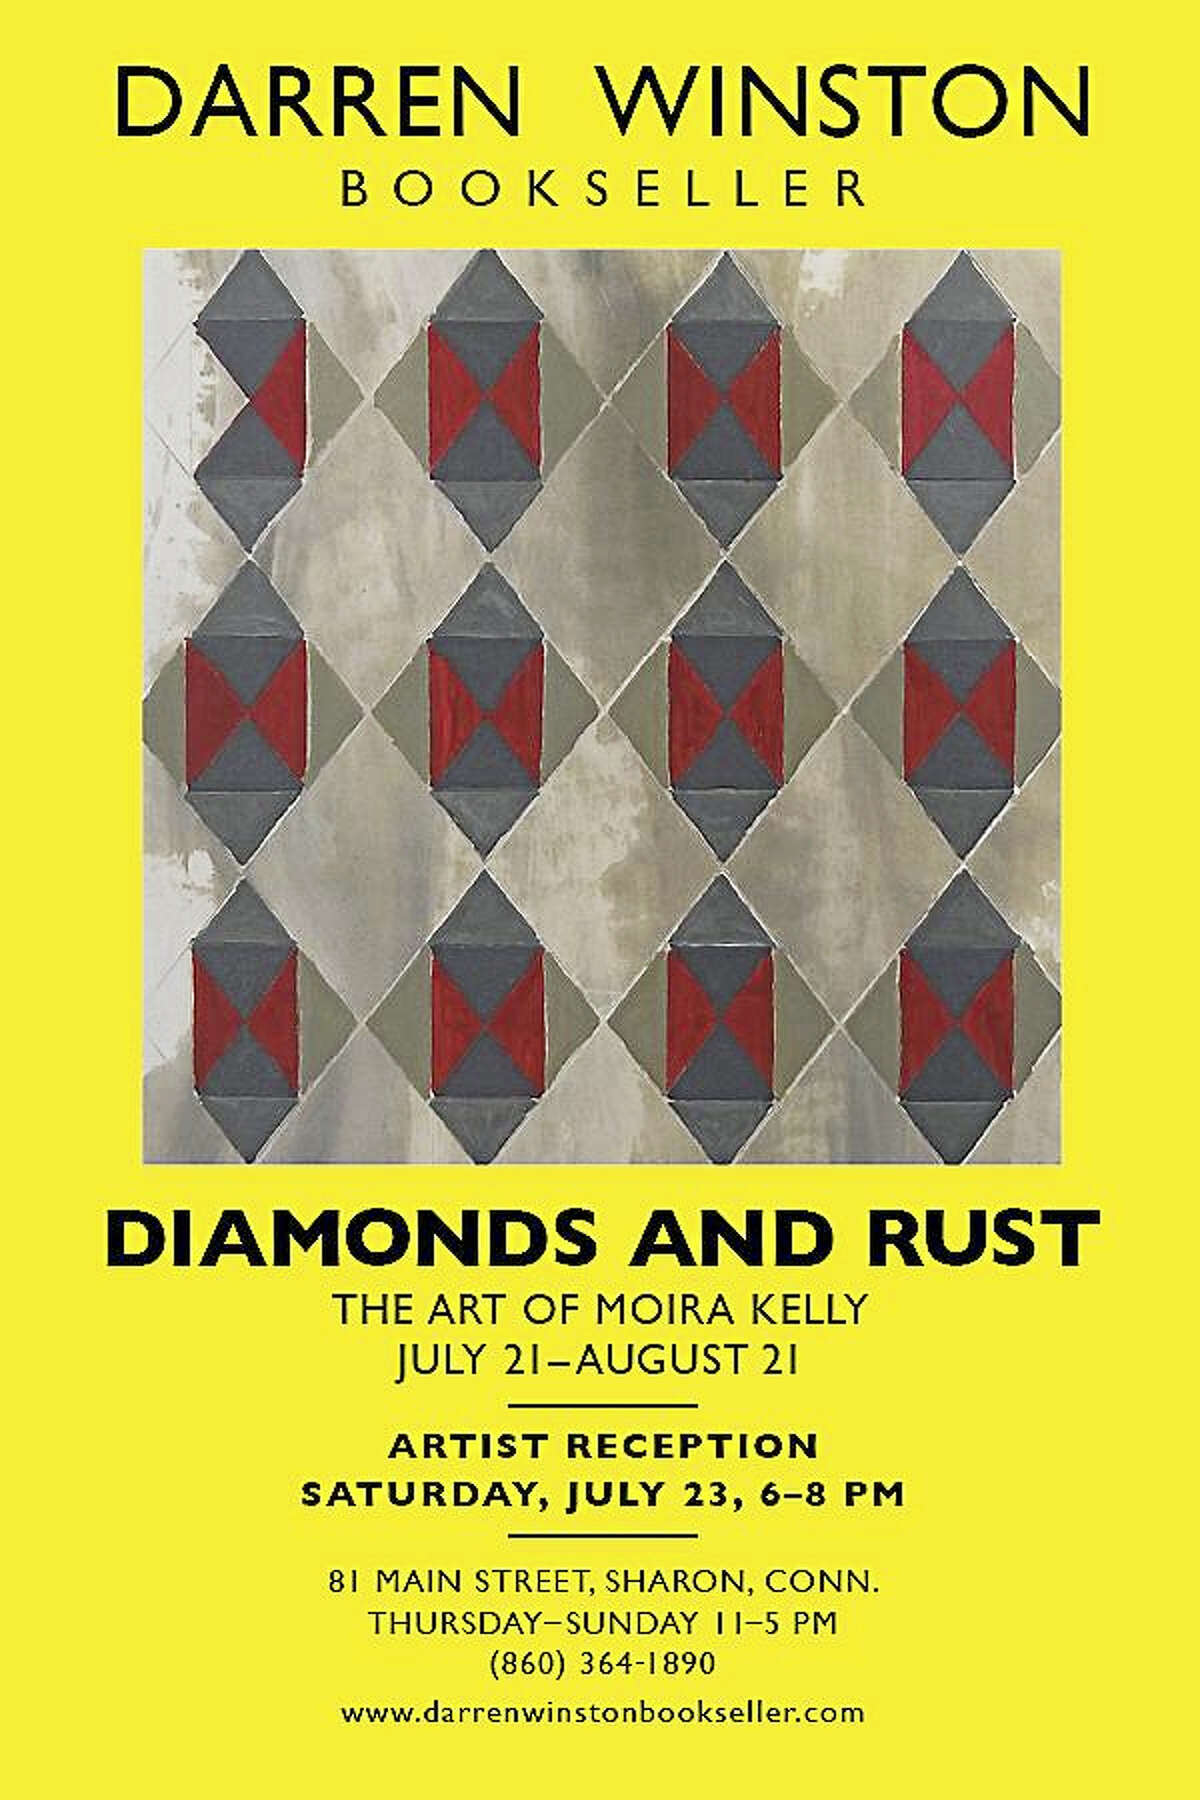 Contributed photoDiamonds and Rust: The Art of Moira Kelly, is the new show at Darren Winston Bookseller in Sharon, opening July 21 with a reception July 23.